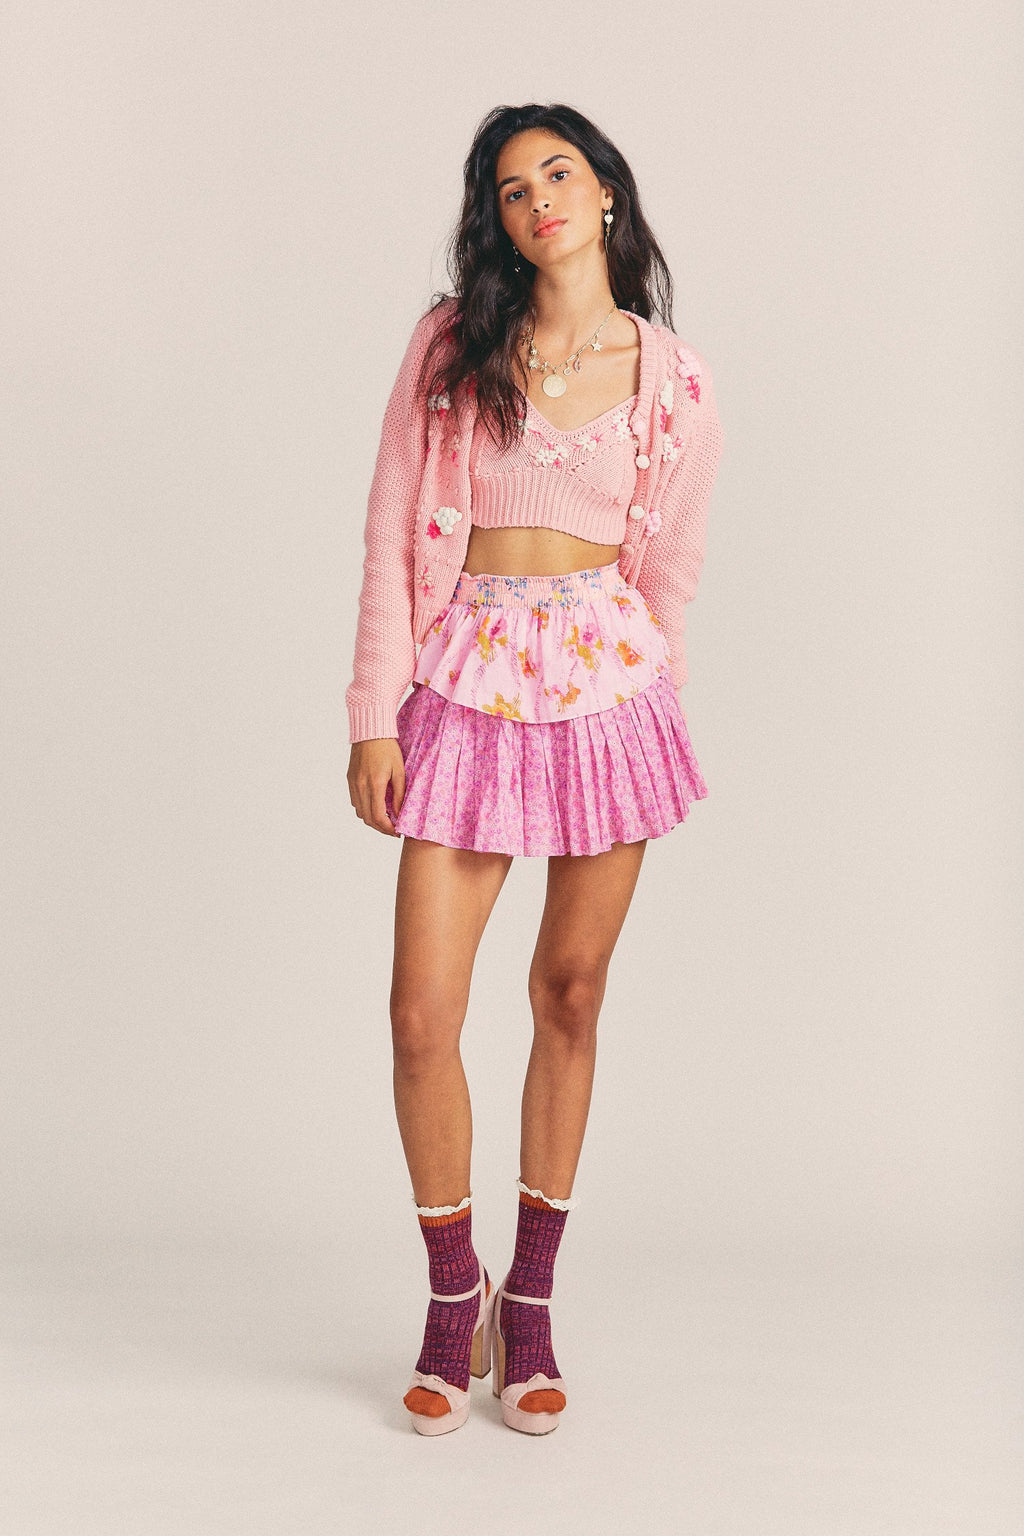 LOVE SHACK FANCY - RUFFLE MINI SKIRT - EXPLODED PINK